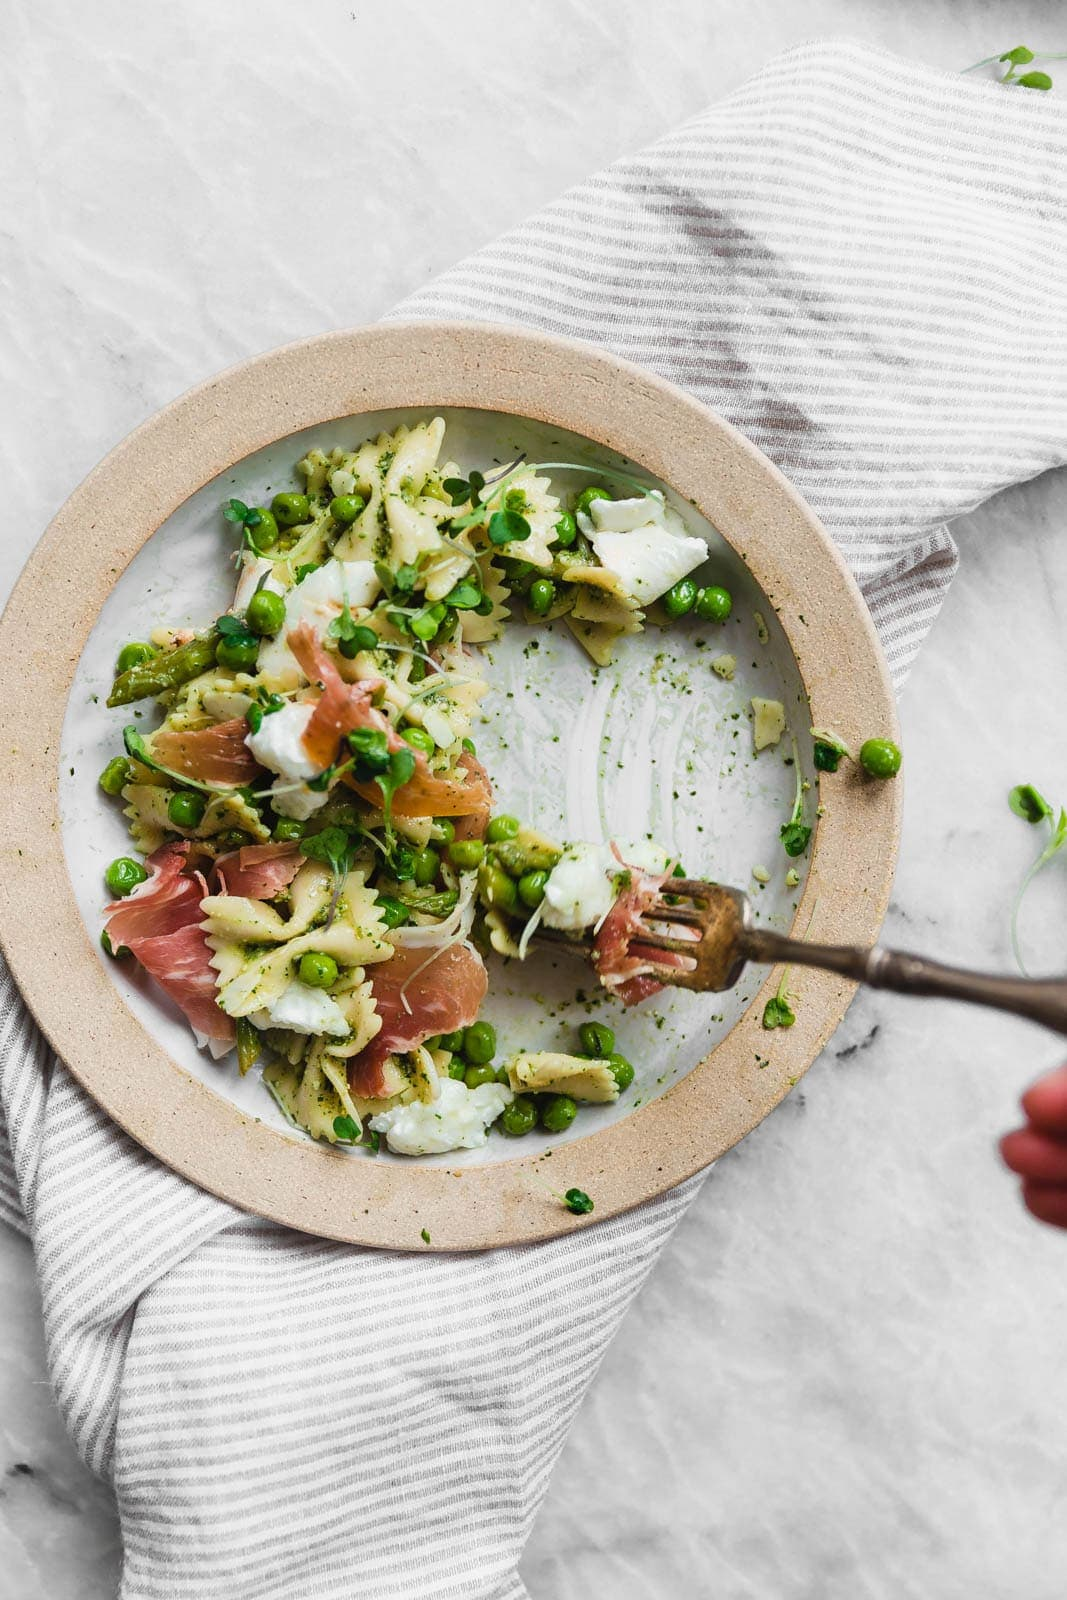 A sensational pesto pasta salad with homemade pesto, prosciutto, peas, asparagus, and burrata.